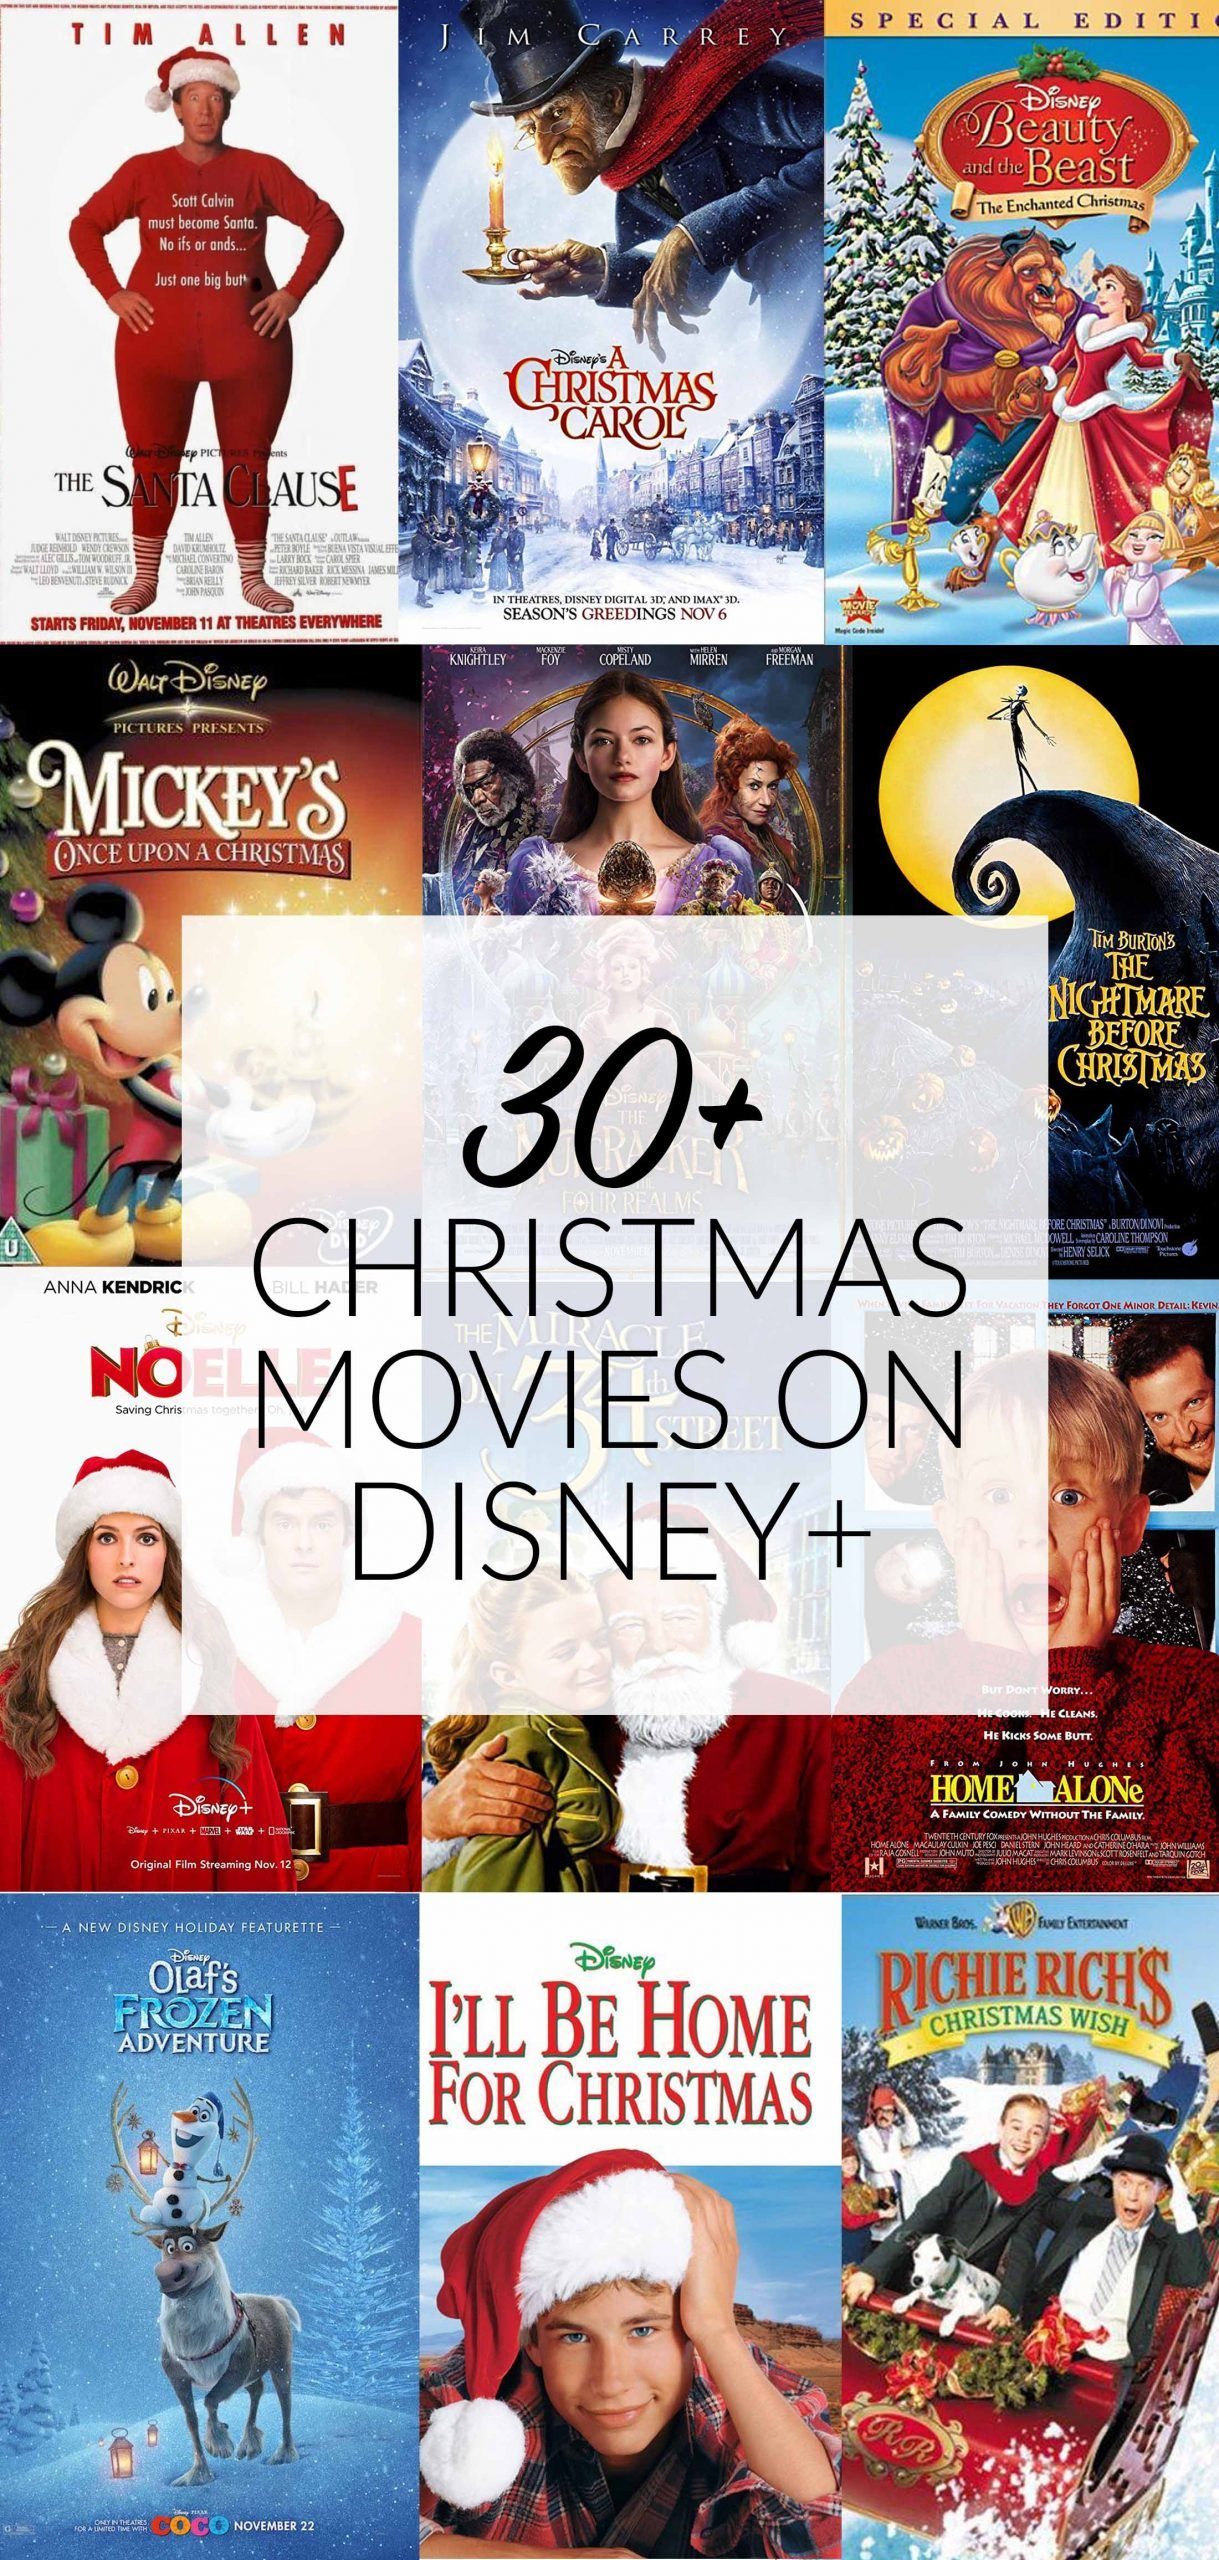 Looking for the best holiday movies to stream? Disney+ has over 30 Christmas movies to watch this season with your family! #ChristmasMovies